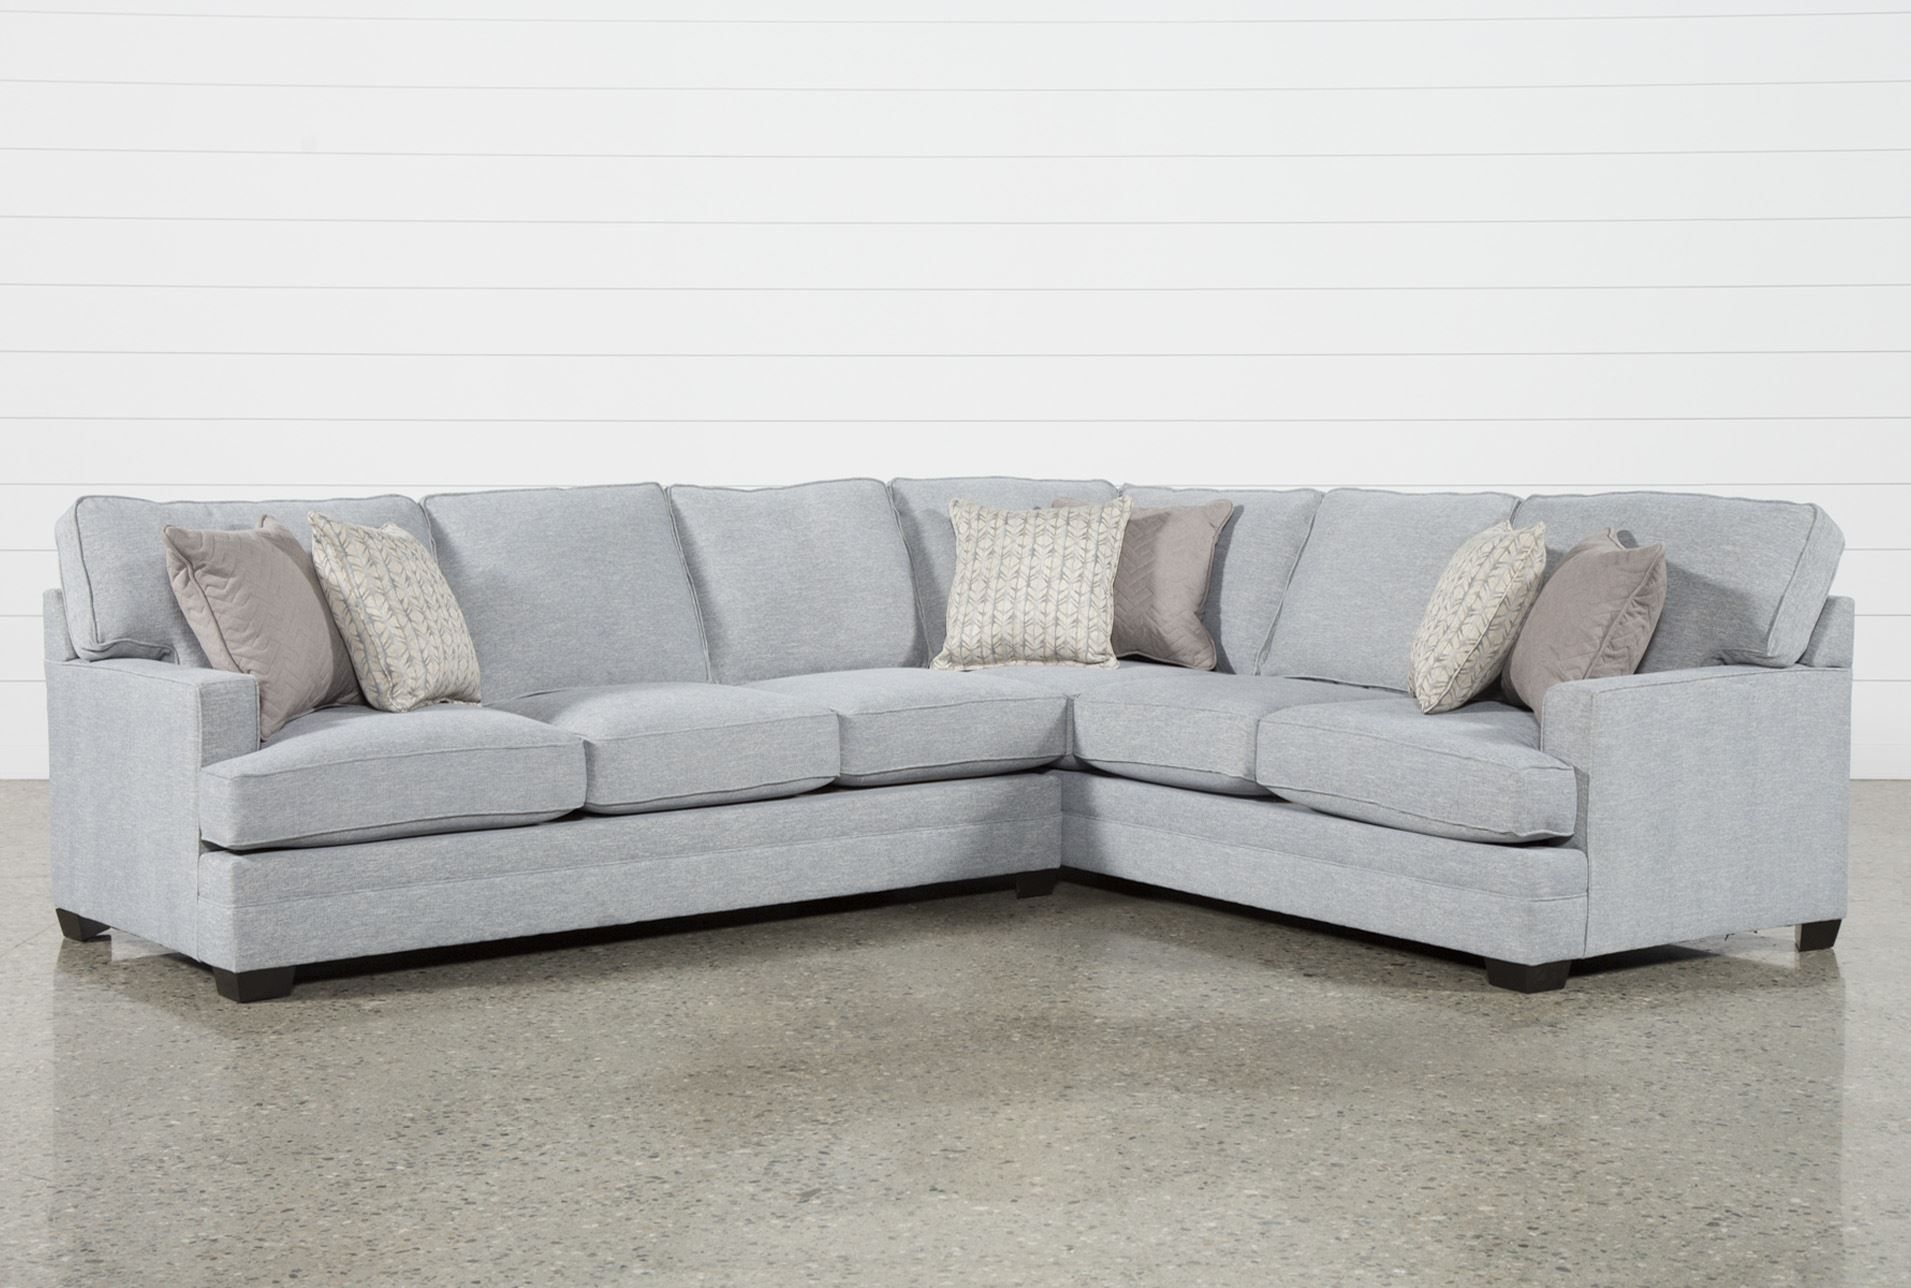 Josephine 2 Piece Sectional W/laf Sofa | Decorating And Interiors Regarding Harper Foam 3 Piece Sectionals With Raf Chaise (Image 11 of 25)